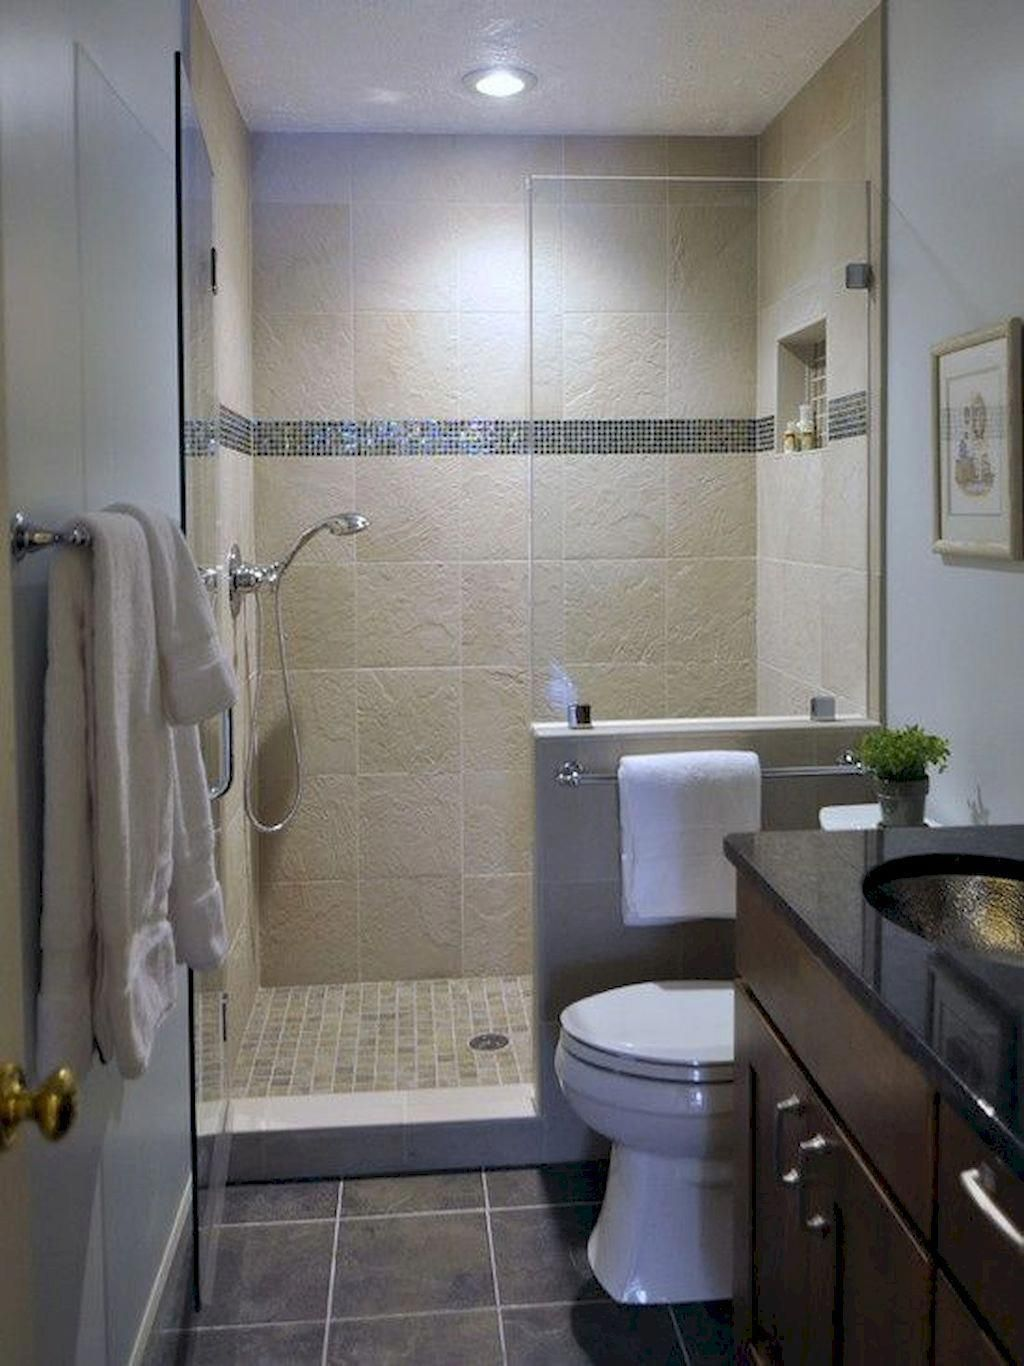 Simple And Challenging Diy Bathroom Remodel Projects With Images